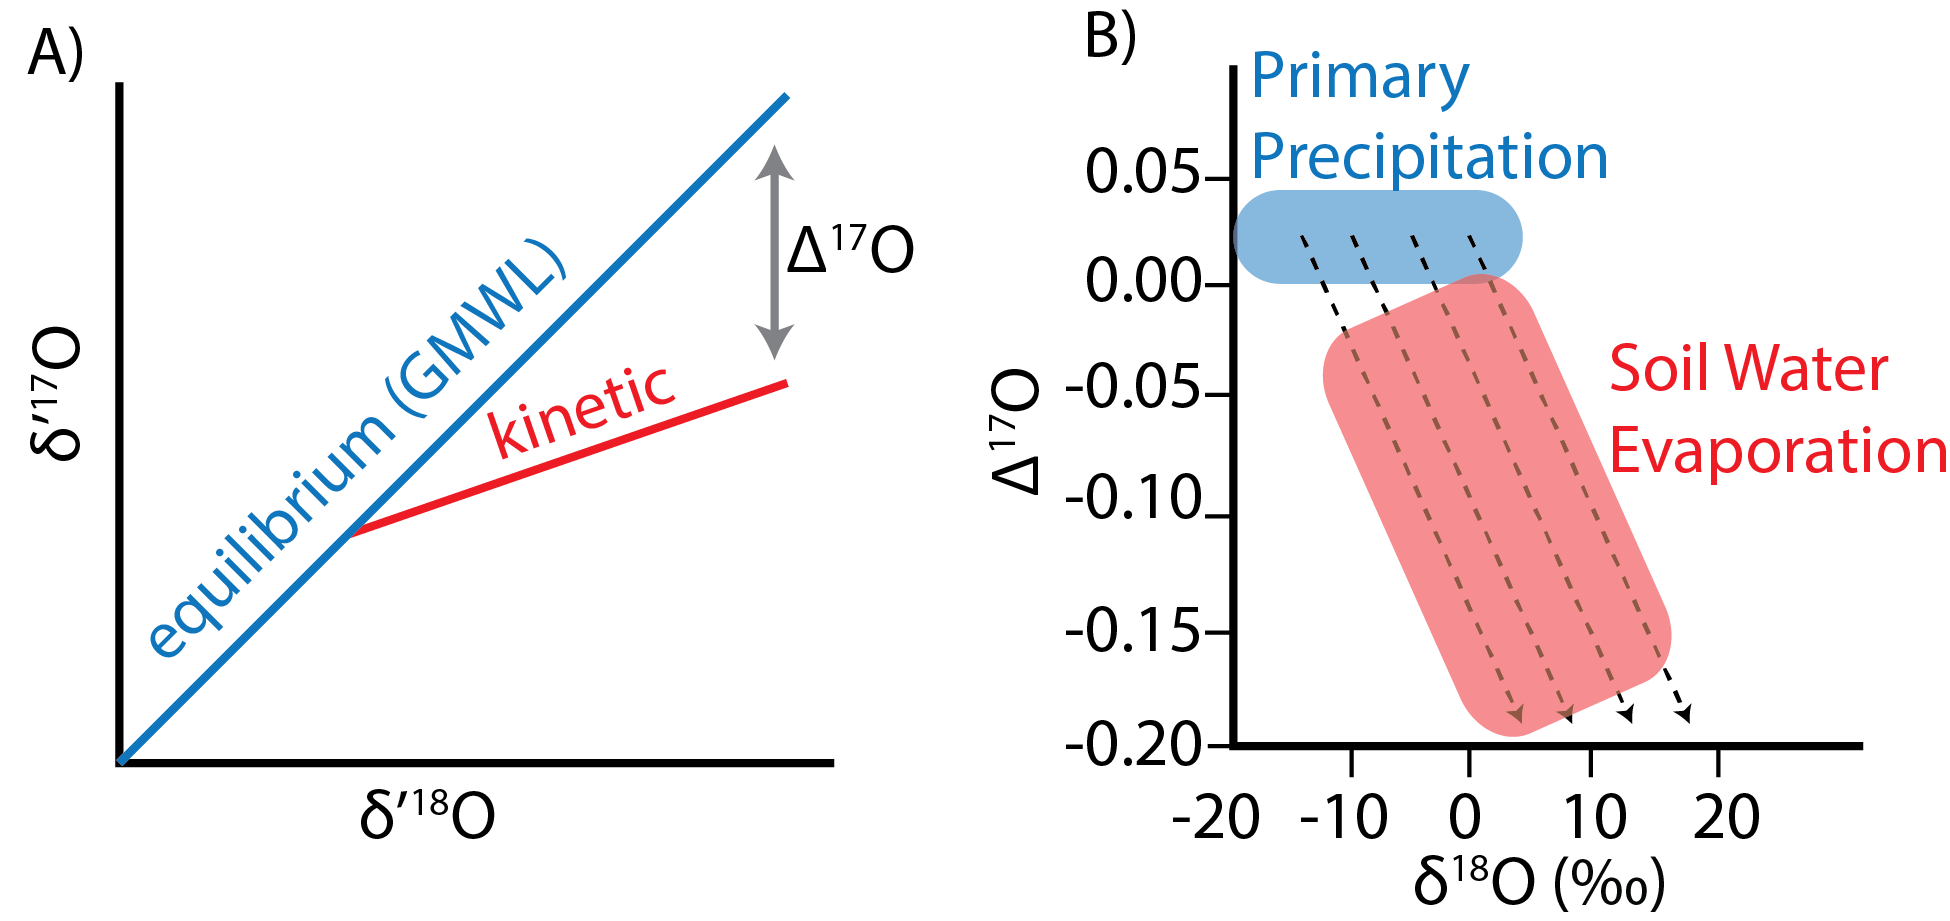 A) Schematic where Δ17O represents the deviation of δ17O and δ18O from the equilibrium Global Meteoric Water Line (GMWL; λ = 0.528). B) An evaporative increase in soil water should cause decrease in Δ17O values and increase in δ18O compared to the observed range of global precipitation.